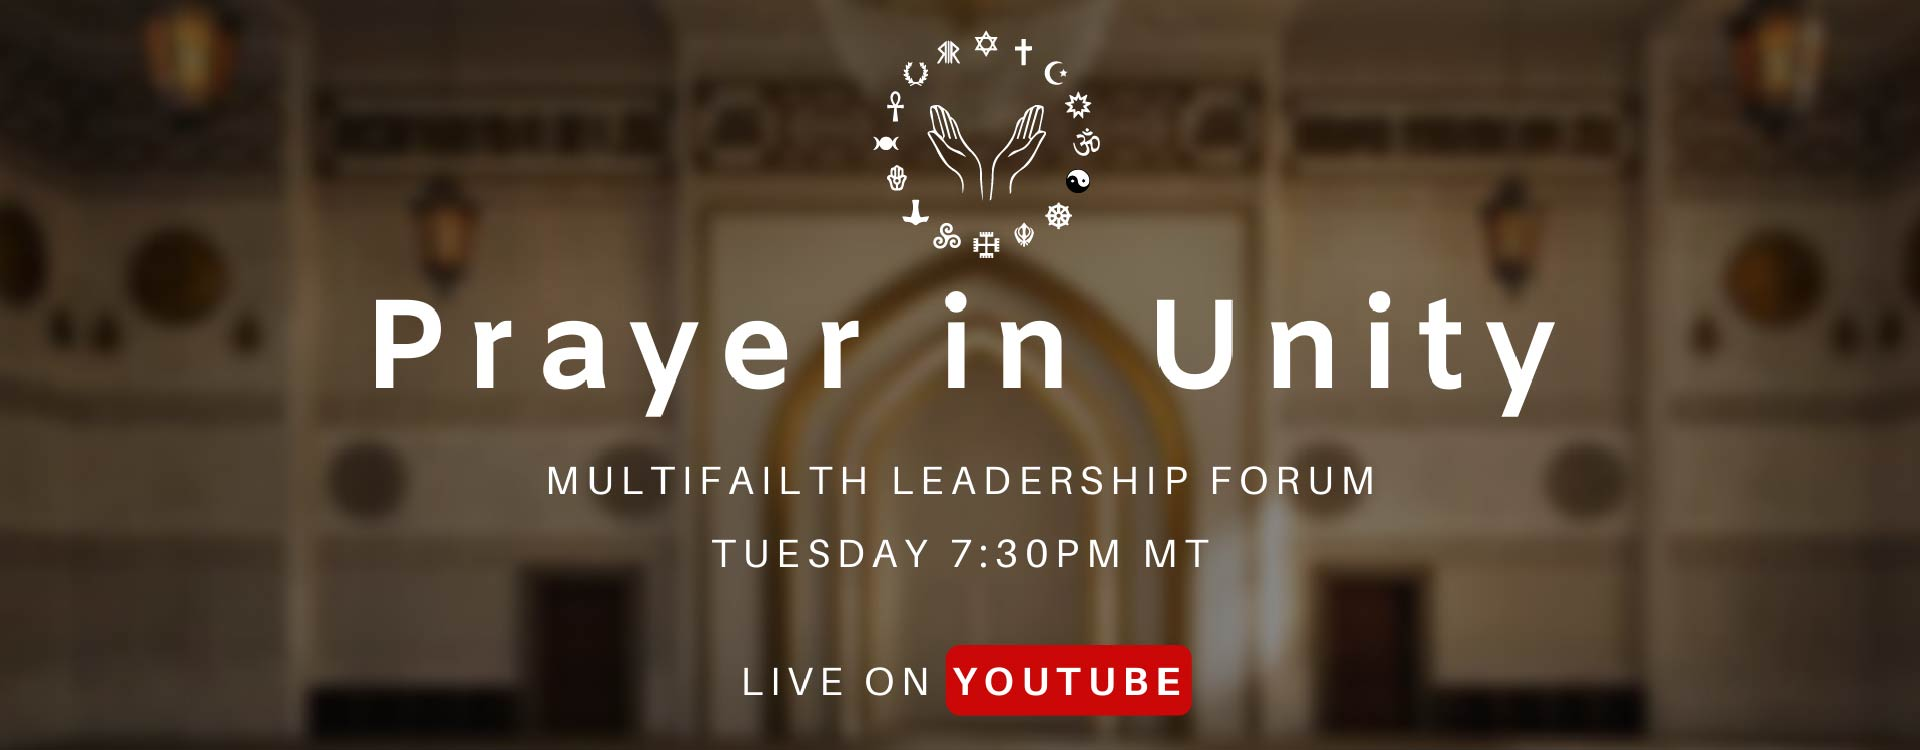 Prayer in Unity        Multifaith Leadership Forum